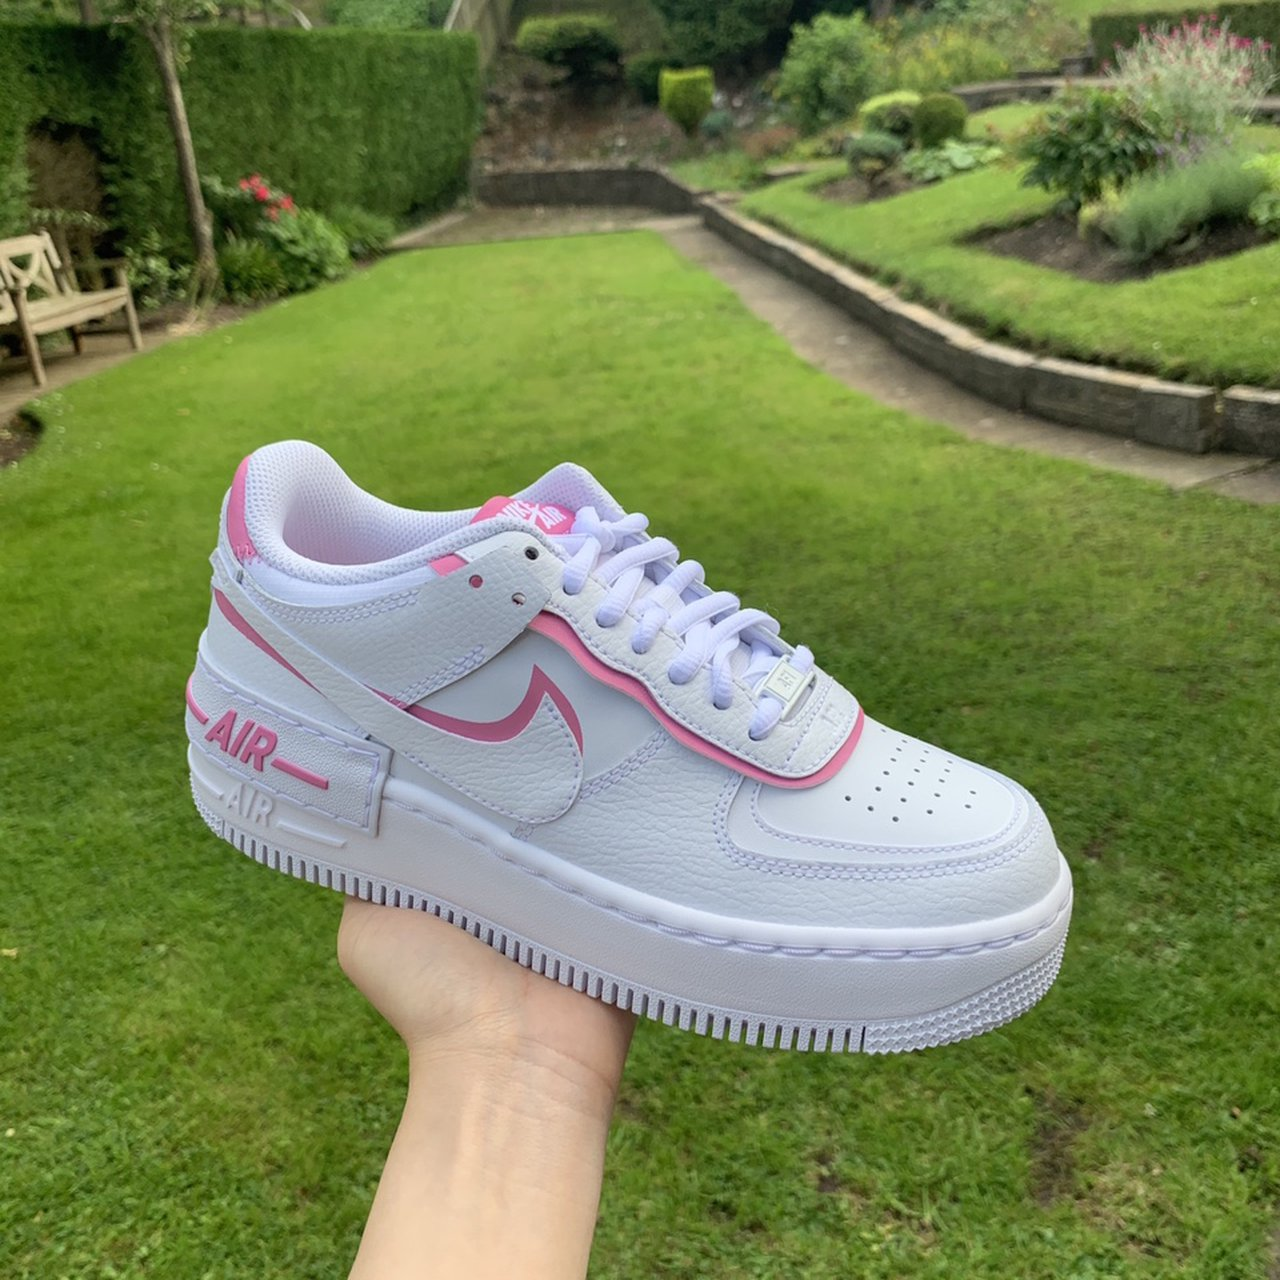 Air Force 1 Pink Shadow Size 4 Pink Flamingo White Depop